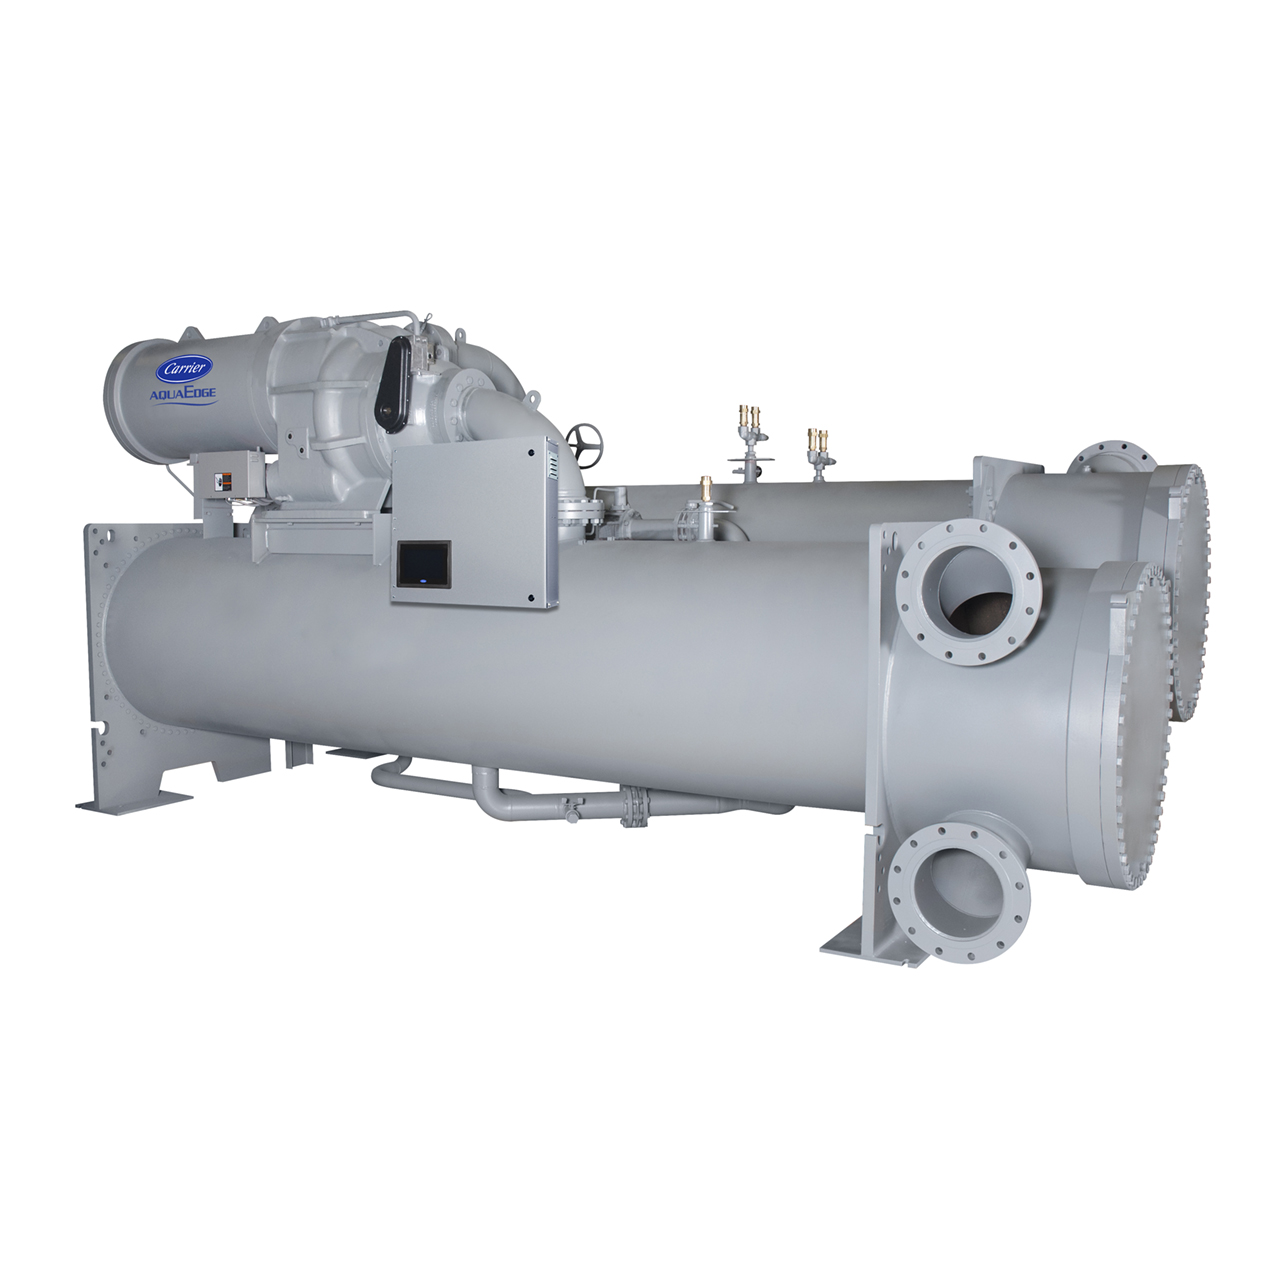 Carrier's AquaEdge® chillers offer the best value in high-efficiency, chlorine-free centrifugal HVAC chillers.